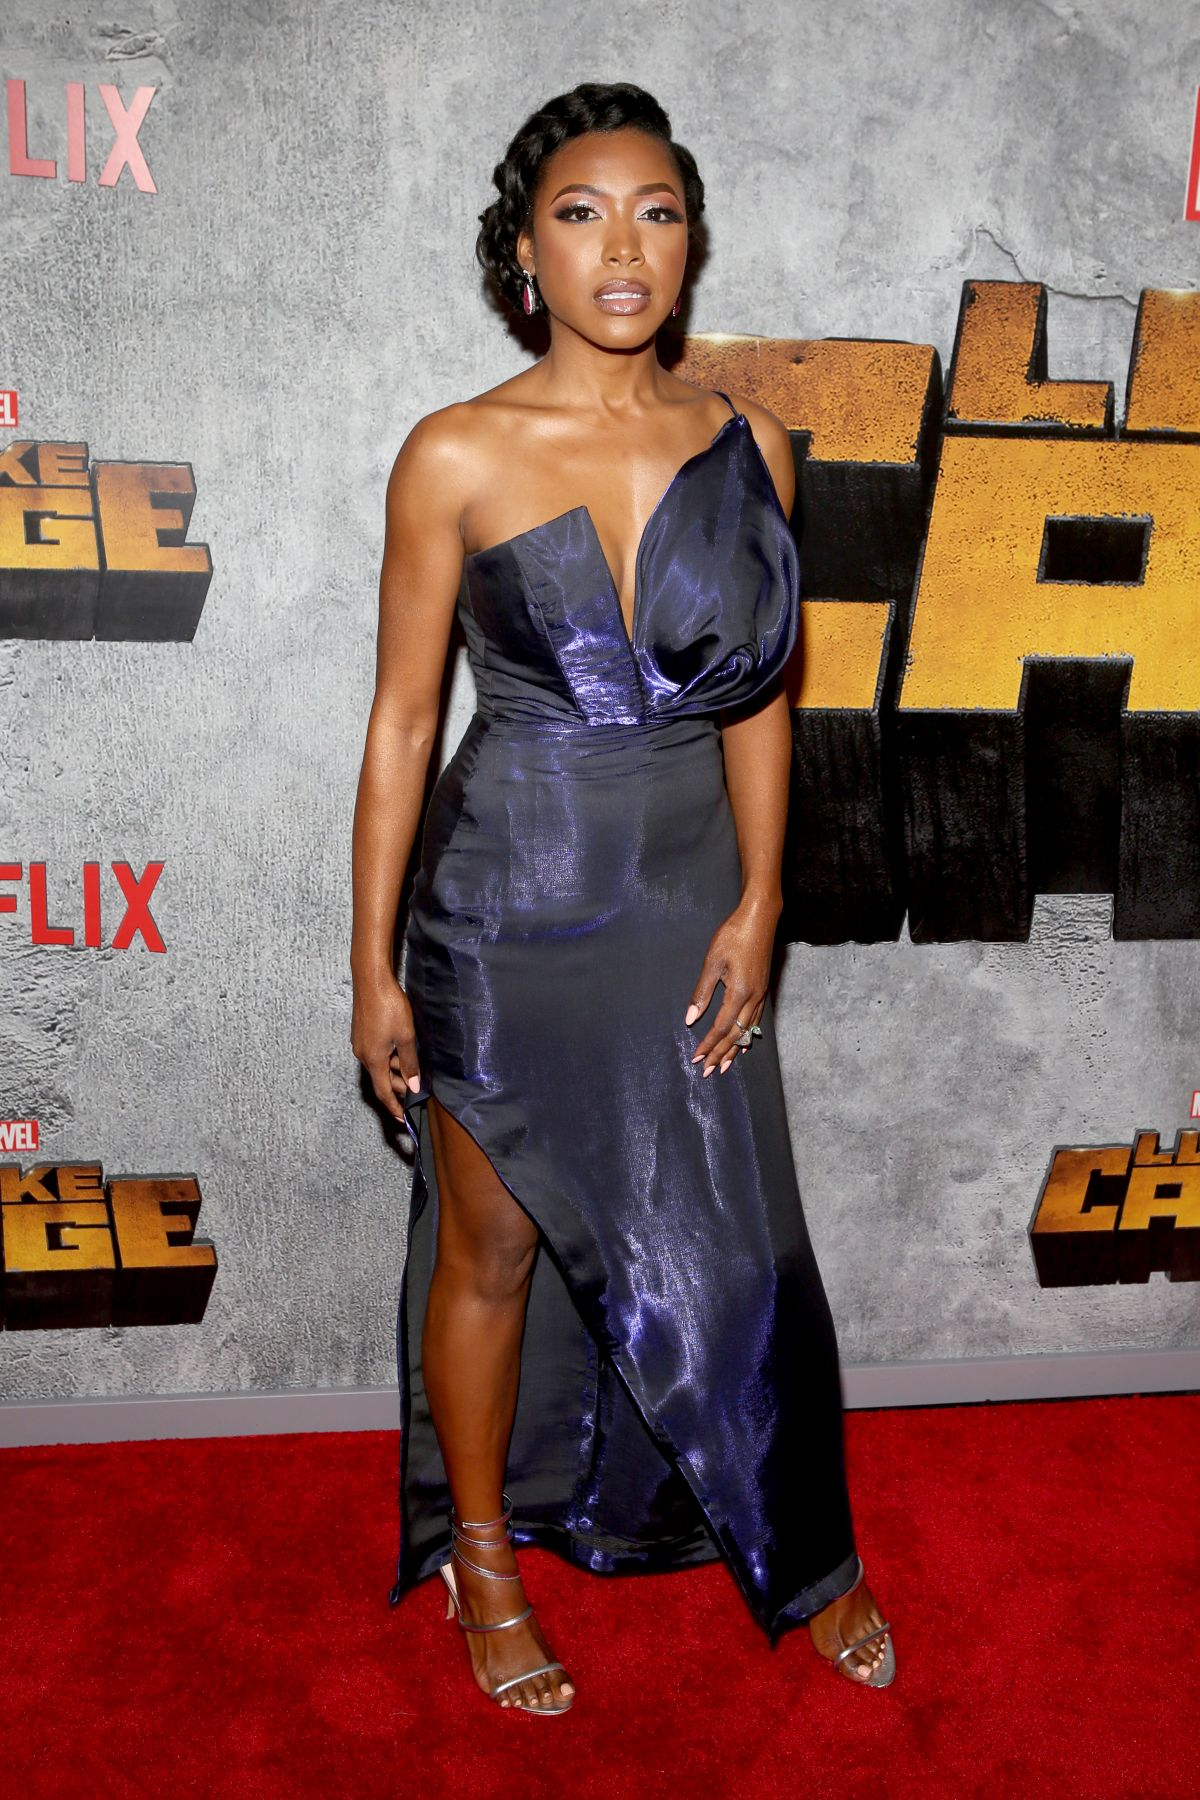 Gabrielle dennis at the premiere of the bobby brown story in hollywood nudes (49 photos), Boobs Celebrity picture